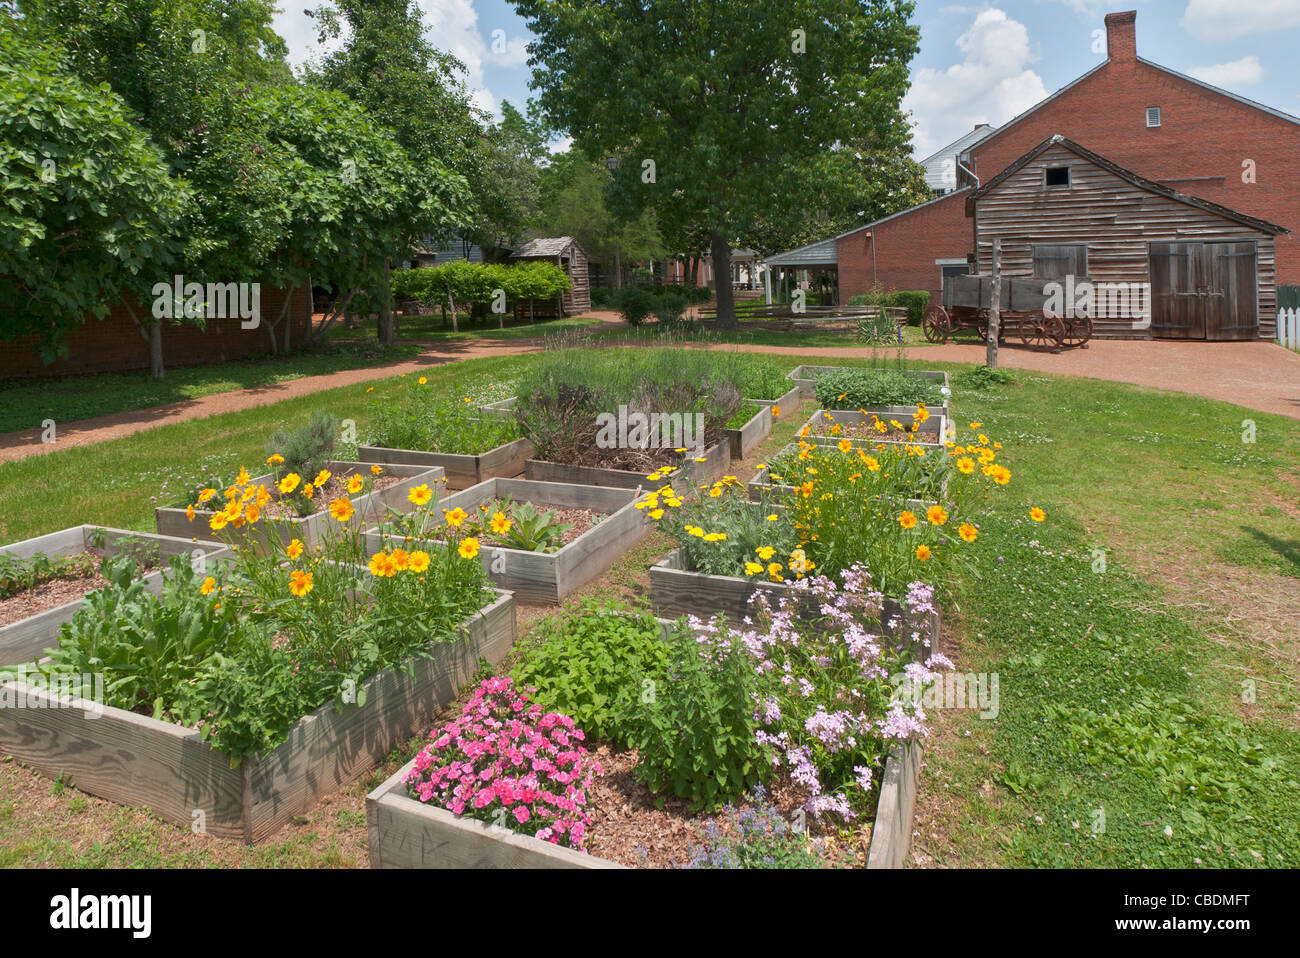 Alabama, Huntsville, Alabama Constitution Village, living history museum, reconstructed buildings circa early 1800s, - Stock Image